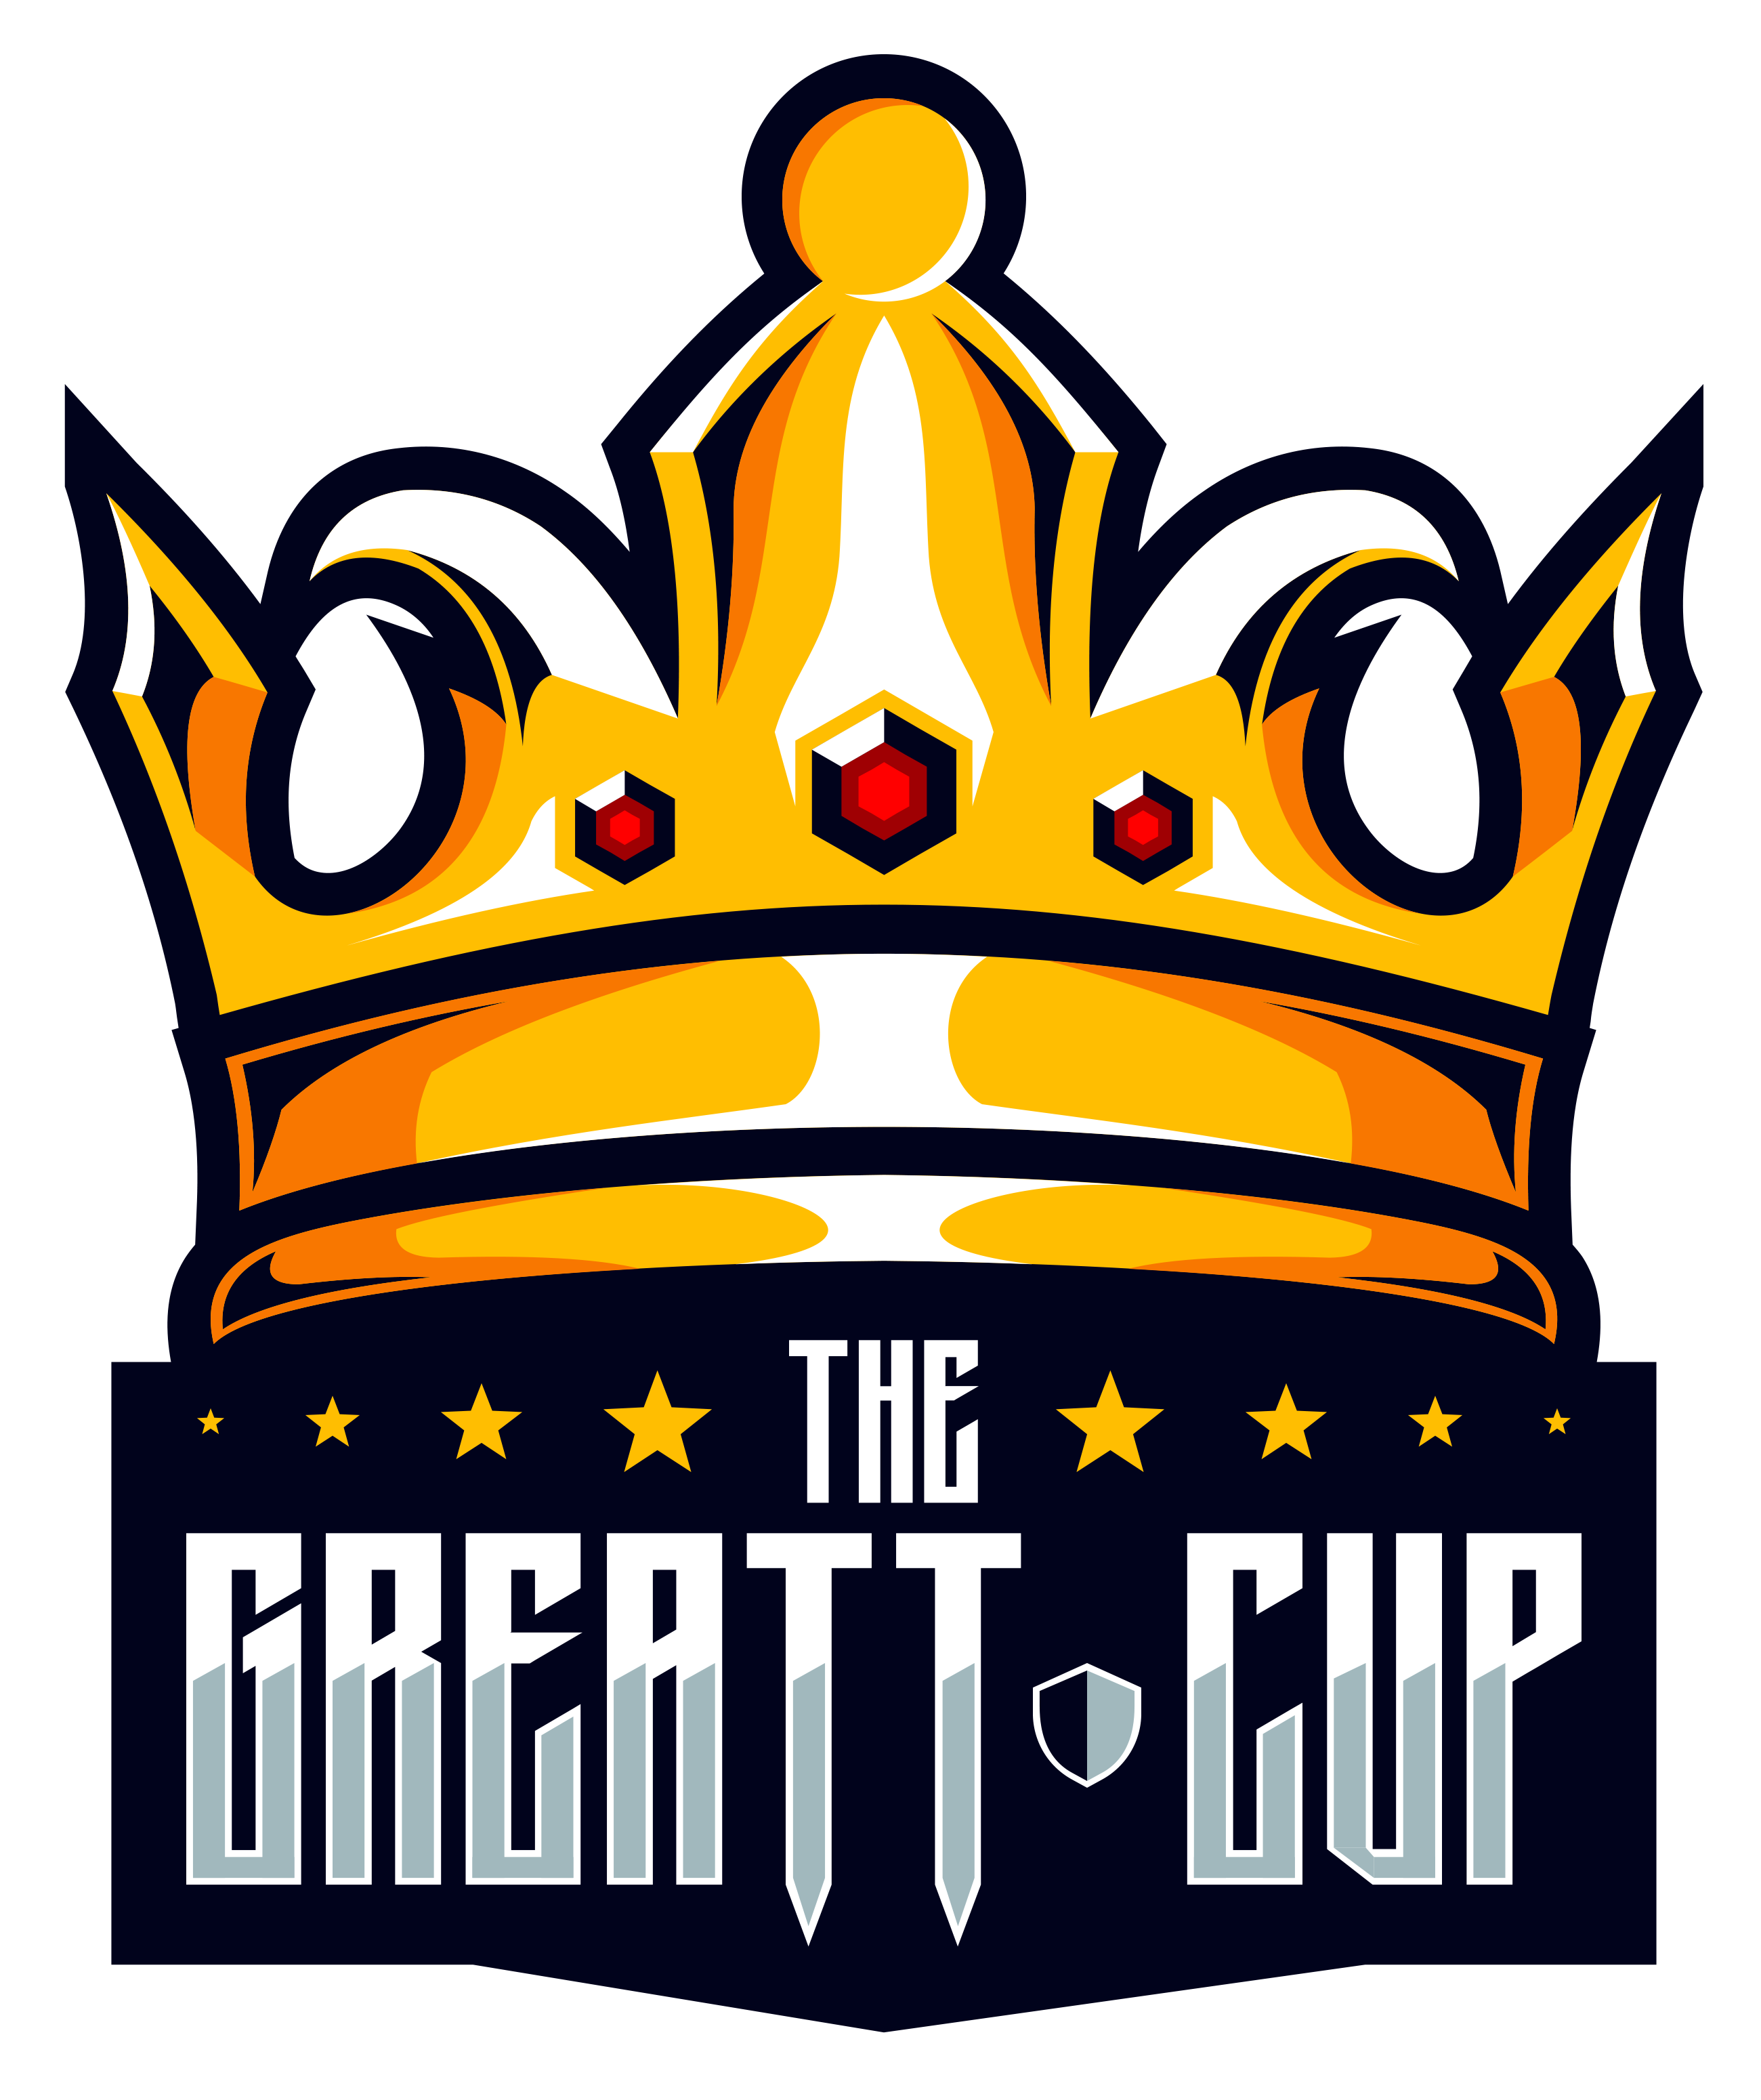 the_greatt_cup_logo-png.196192